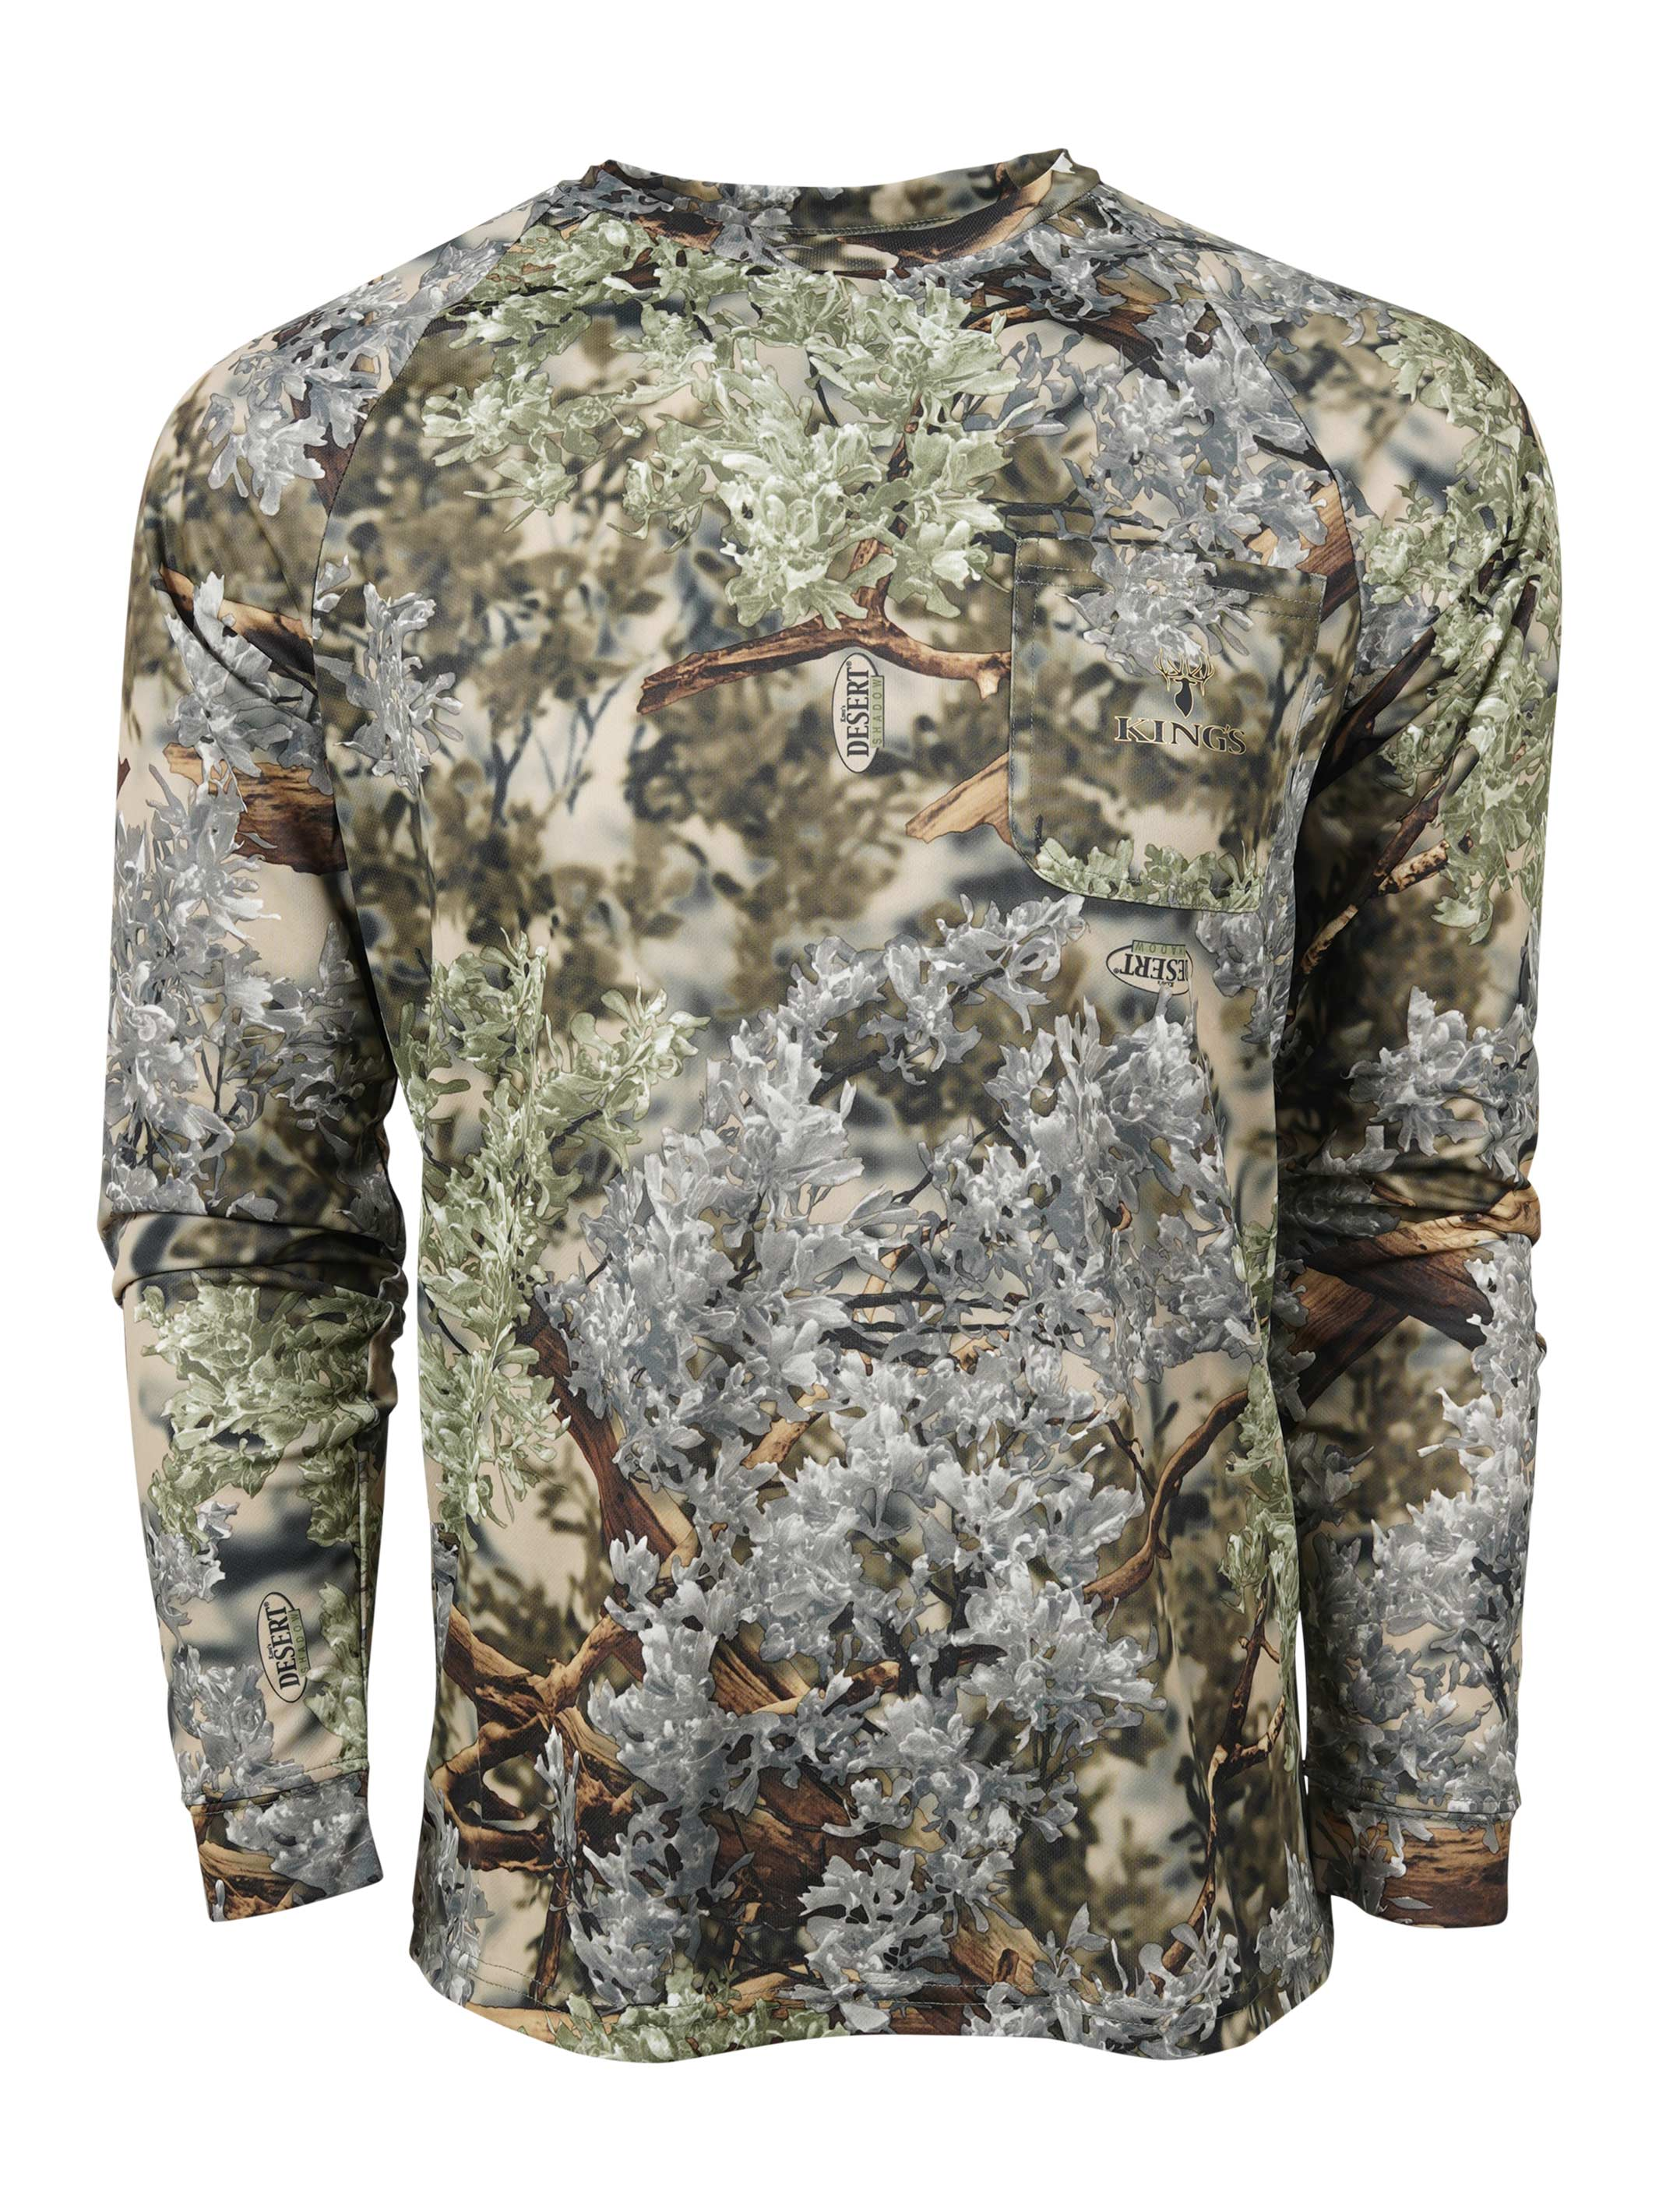 StormKloth God/'s Country Camouflage Long Sleeve Camo T Shirt